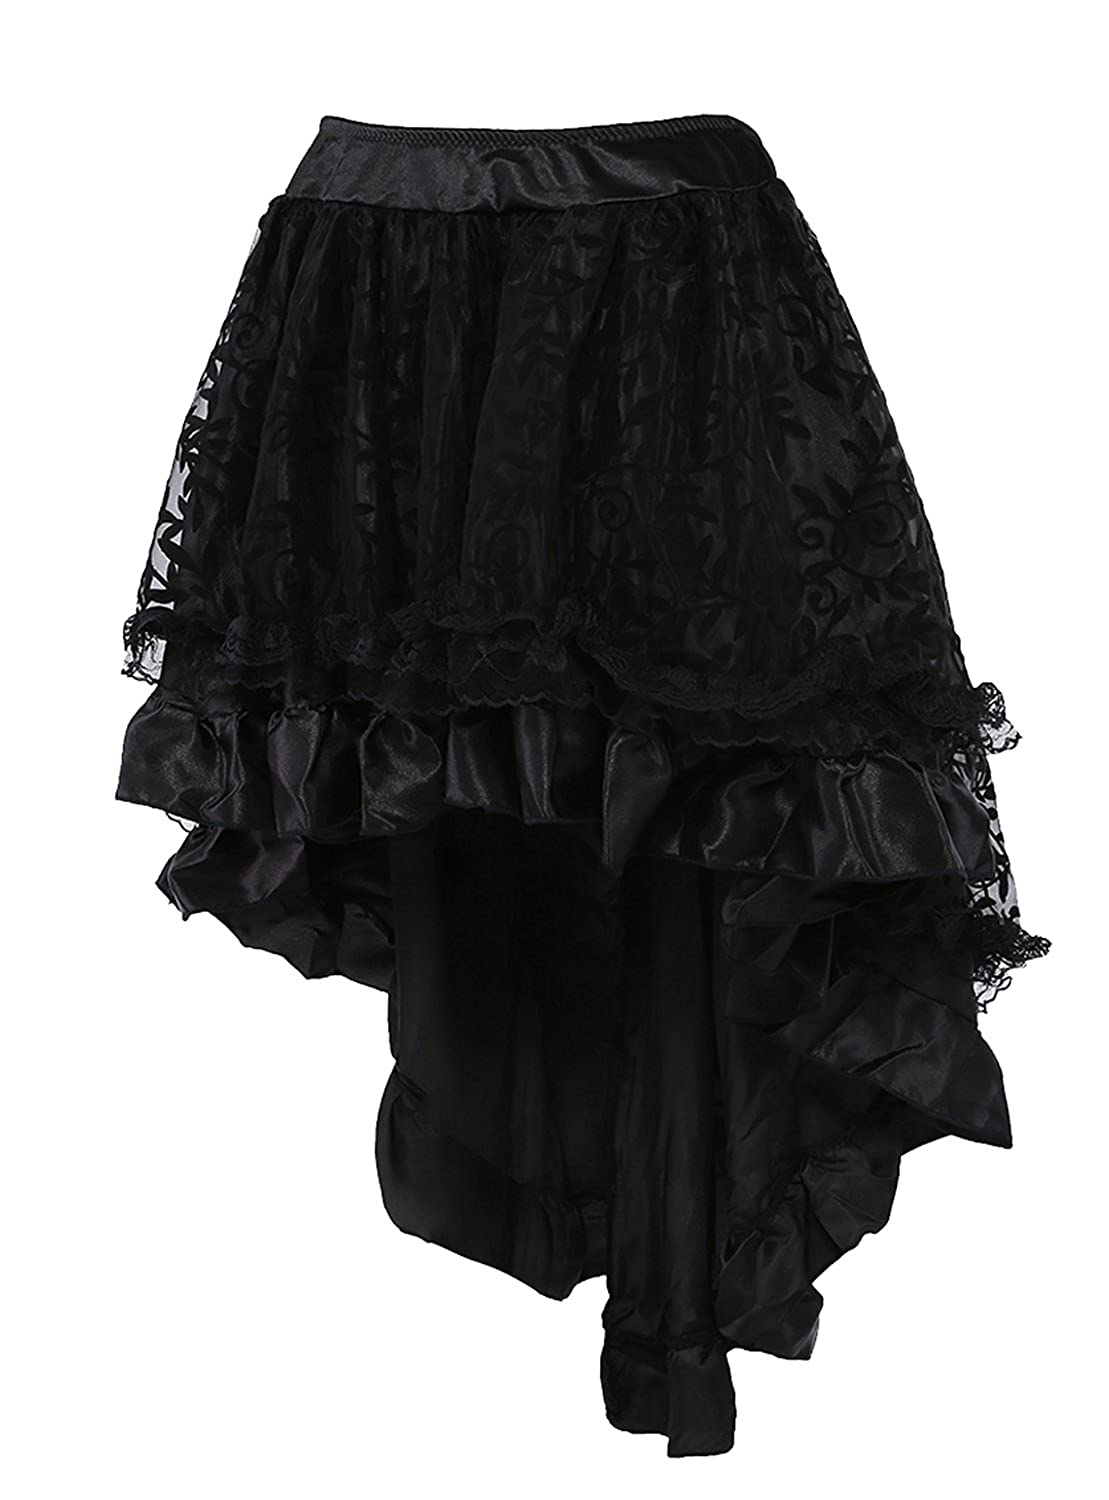 Steampunk Plus Size Clothing & Costumes  Lace Asymmetrical High Low Corset Skirt $19.99 AT vintagedancer.com